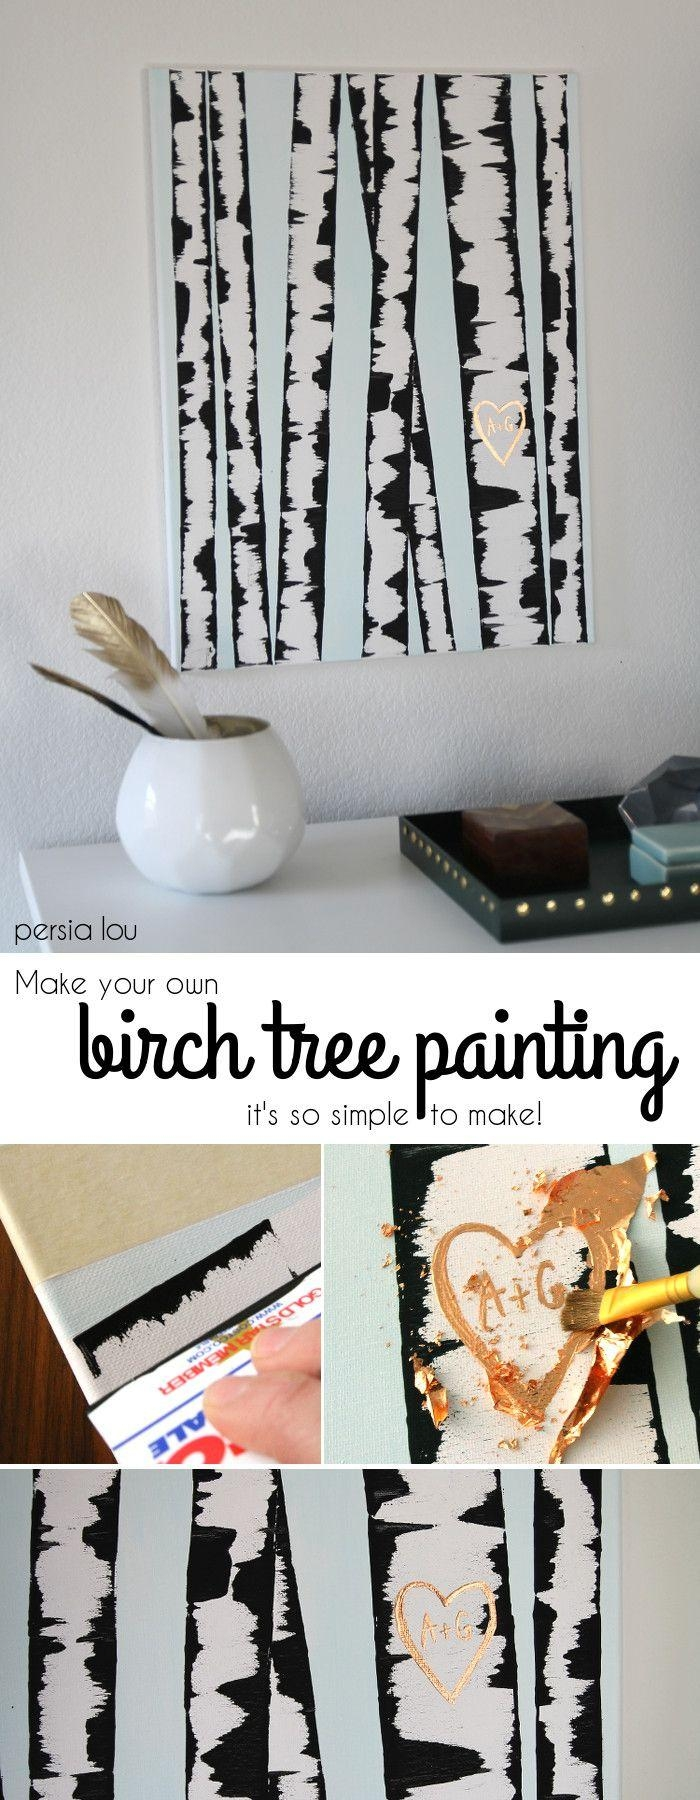 Best 20+ Canvas Wall Art Ideas On Pinterest—No Signup Required Within Classy Wall Art (Image 4 of 20)